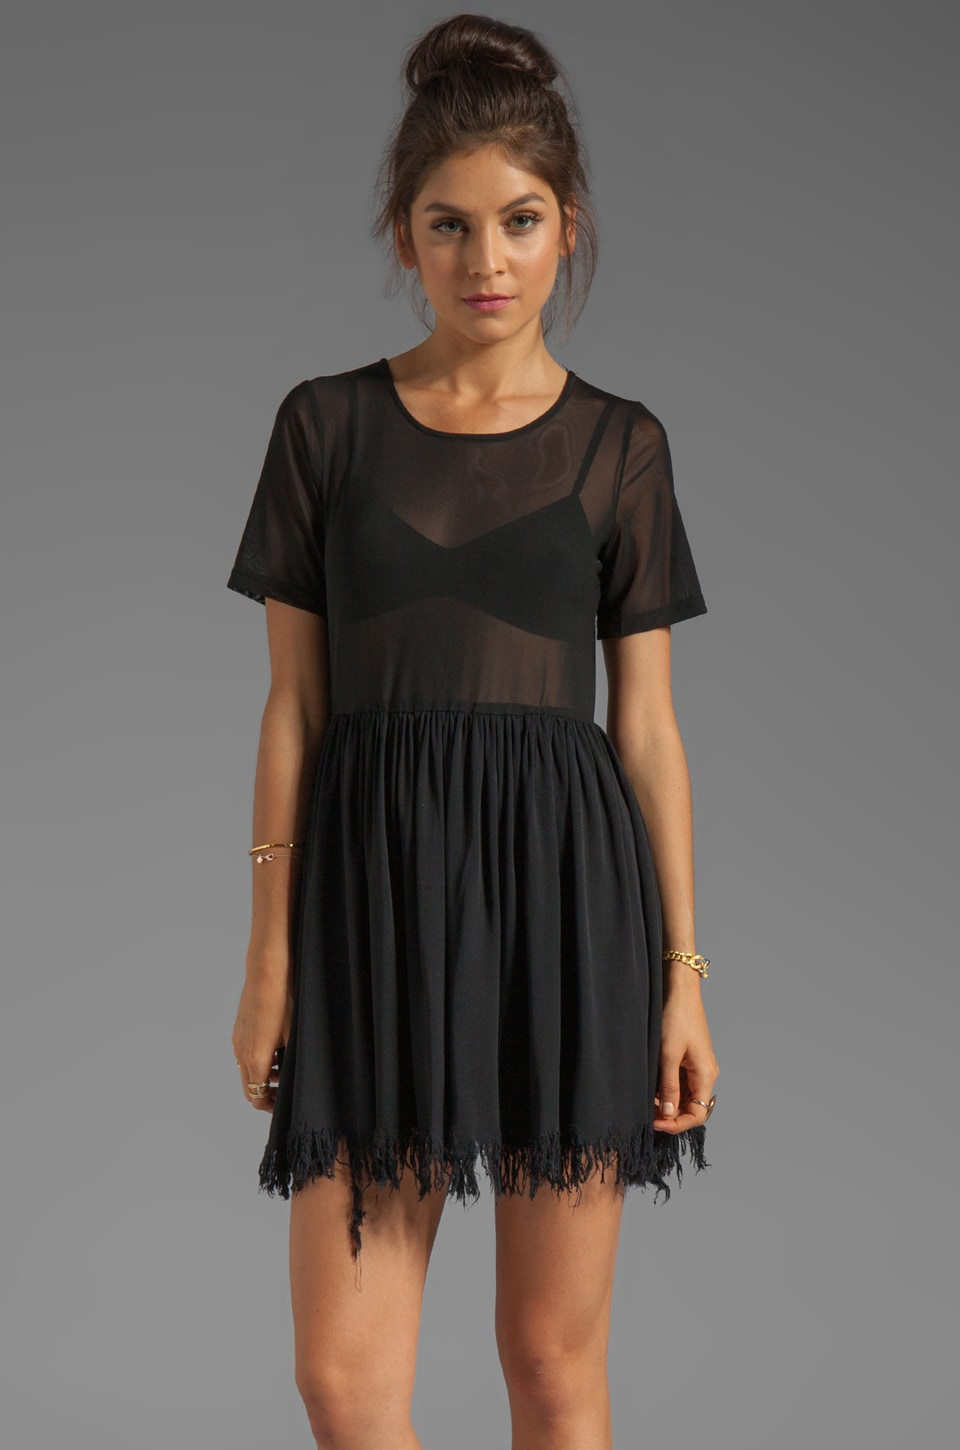 UNIF Shredder Dress in Black